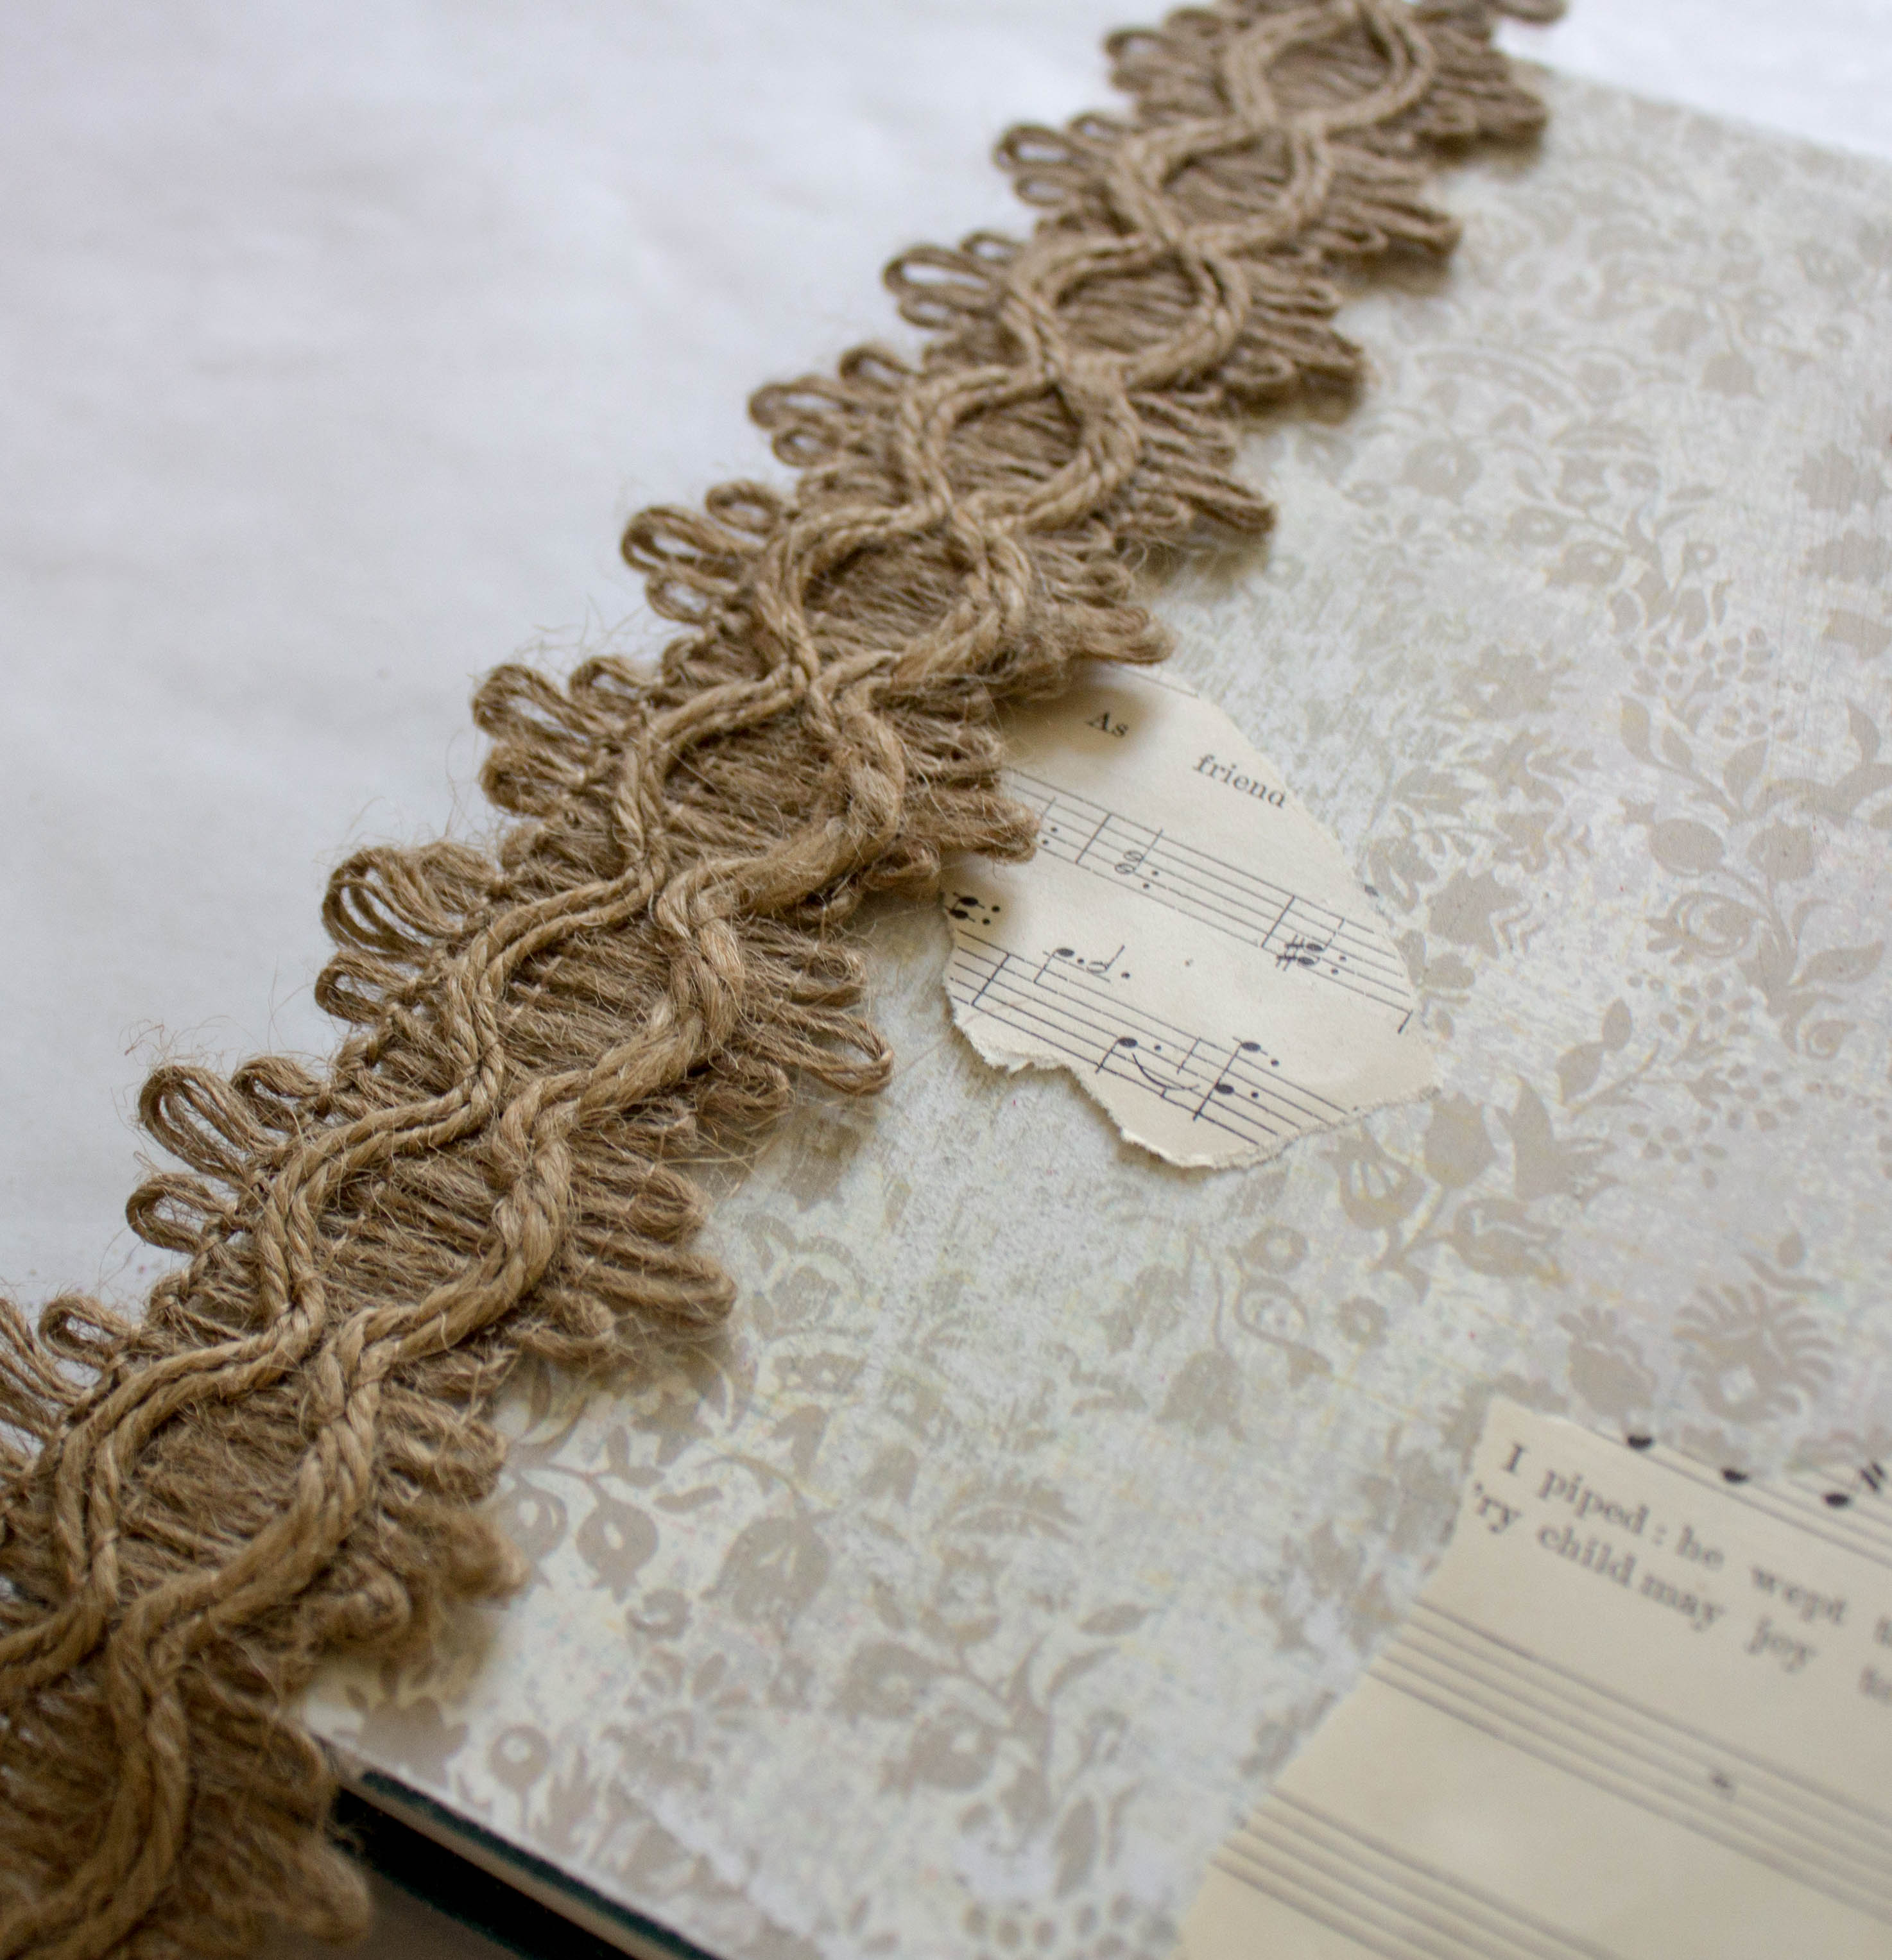 burlap-and-lace-trim-wedding-decor-diy-idea-13